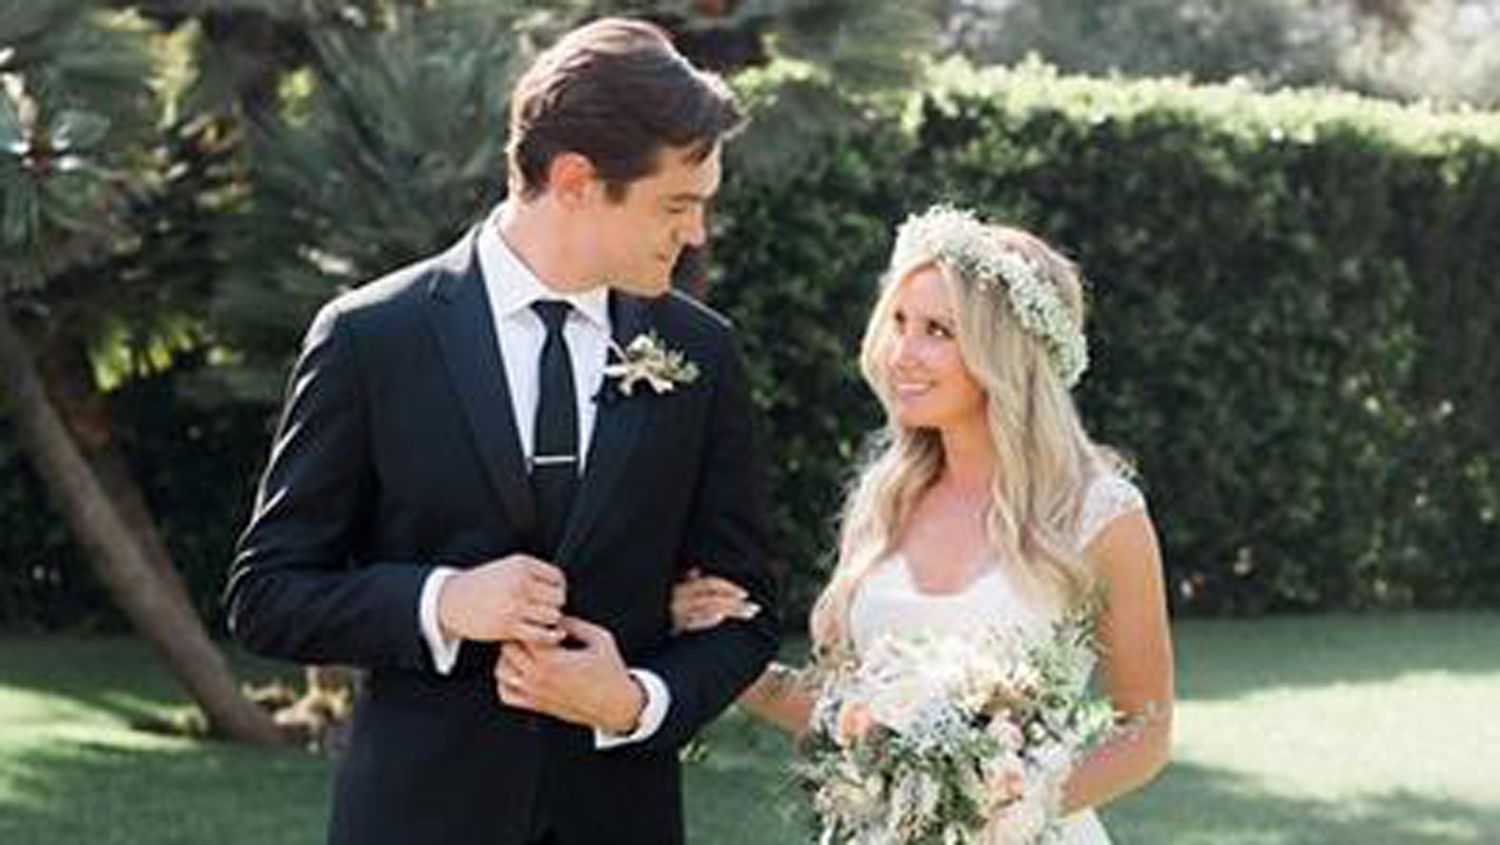 See Disney Channel Star Ashley Tisdale S Wedding Photo Celebrity Weddings Ashley Tisdale Wedding Photo Sharing